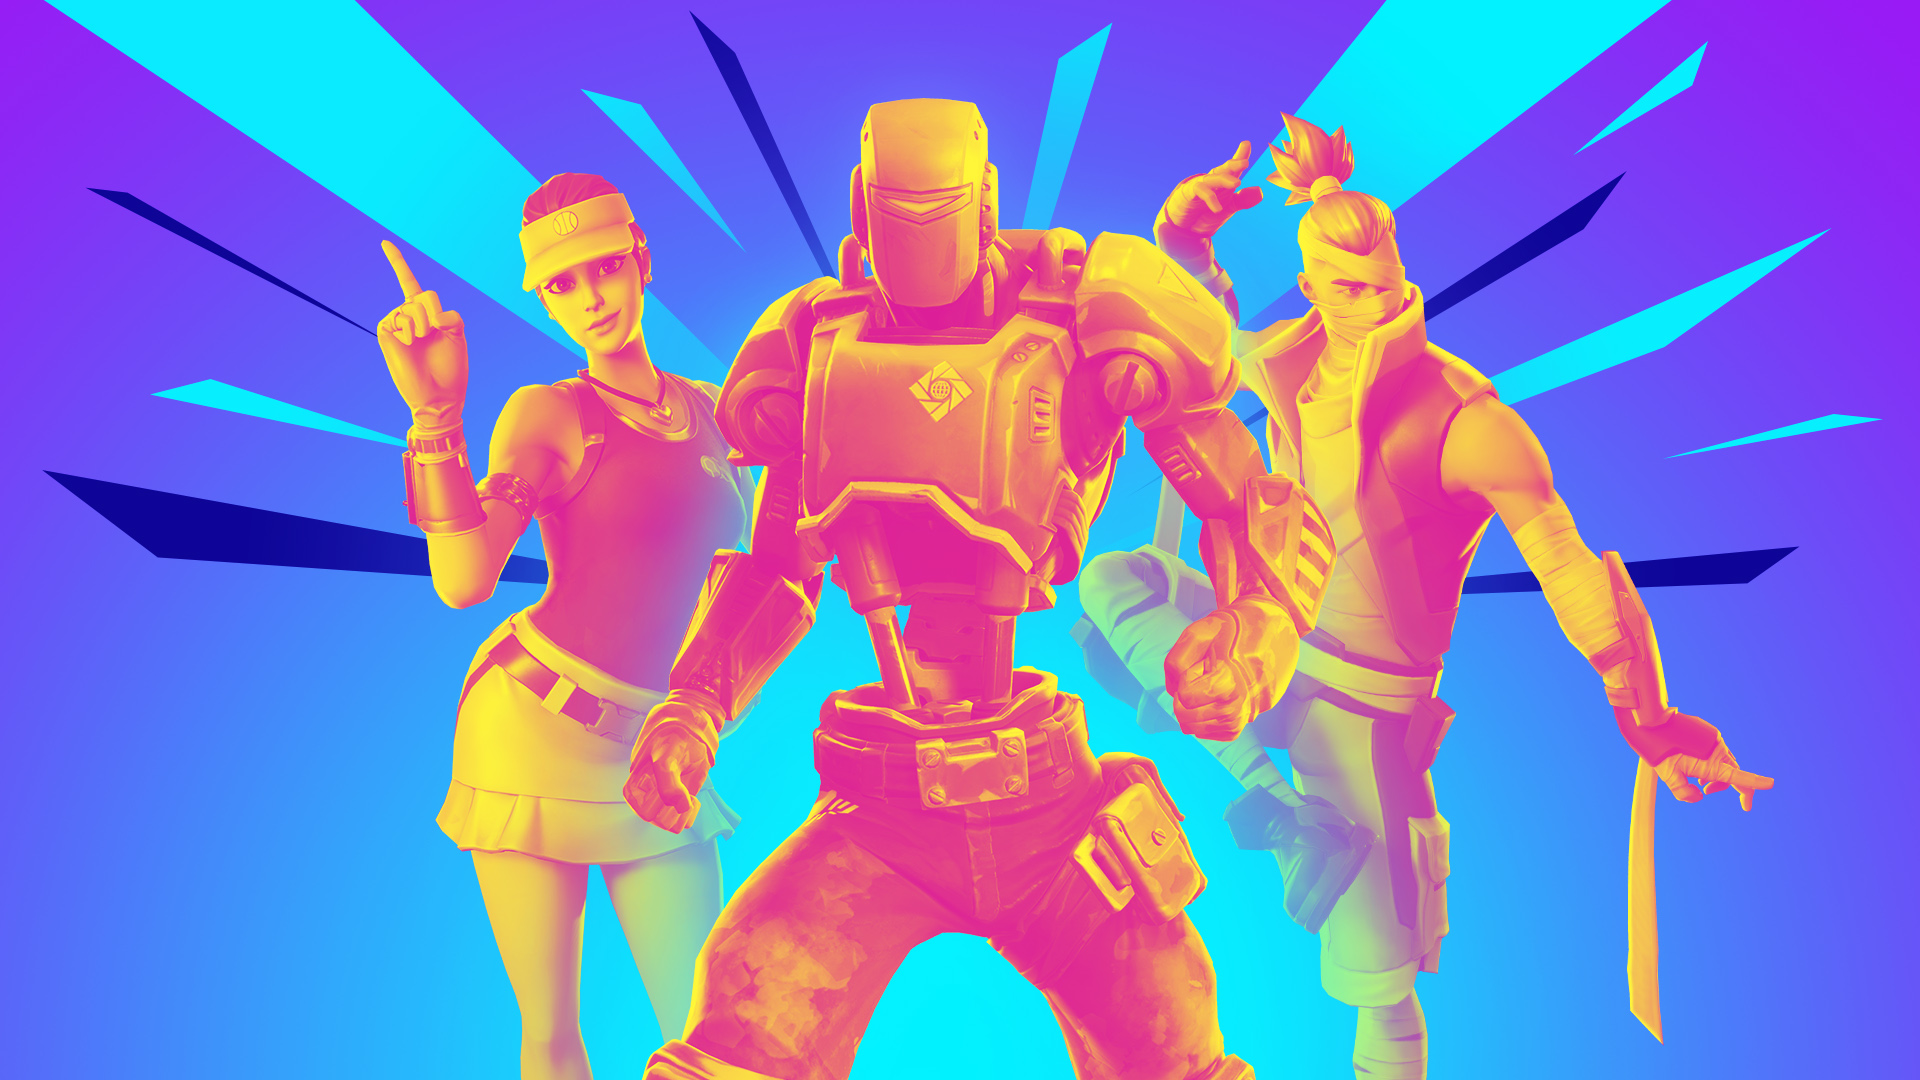 What we know about Fortnite season 9 | Dot Esports